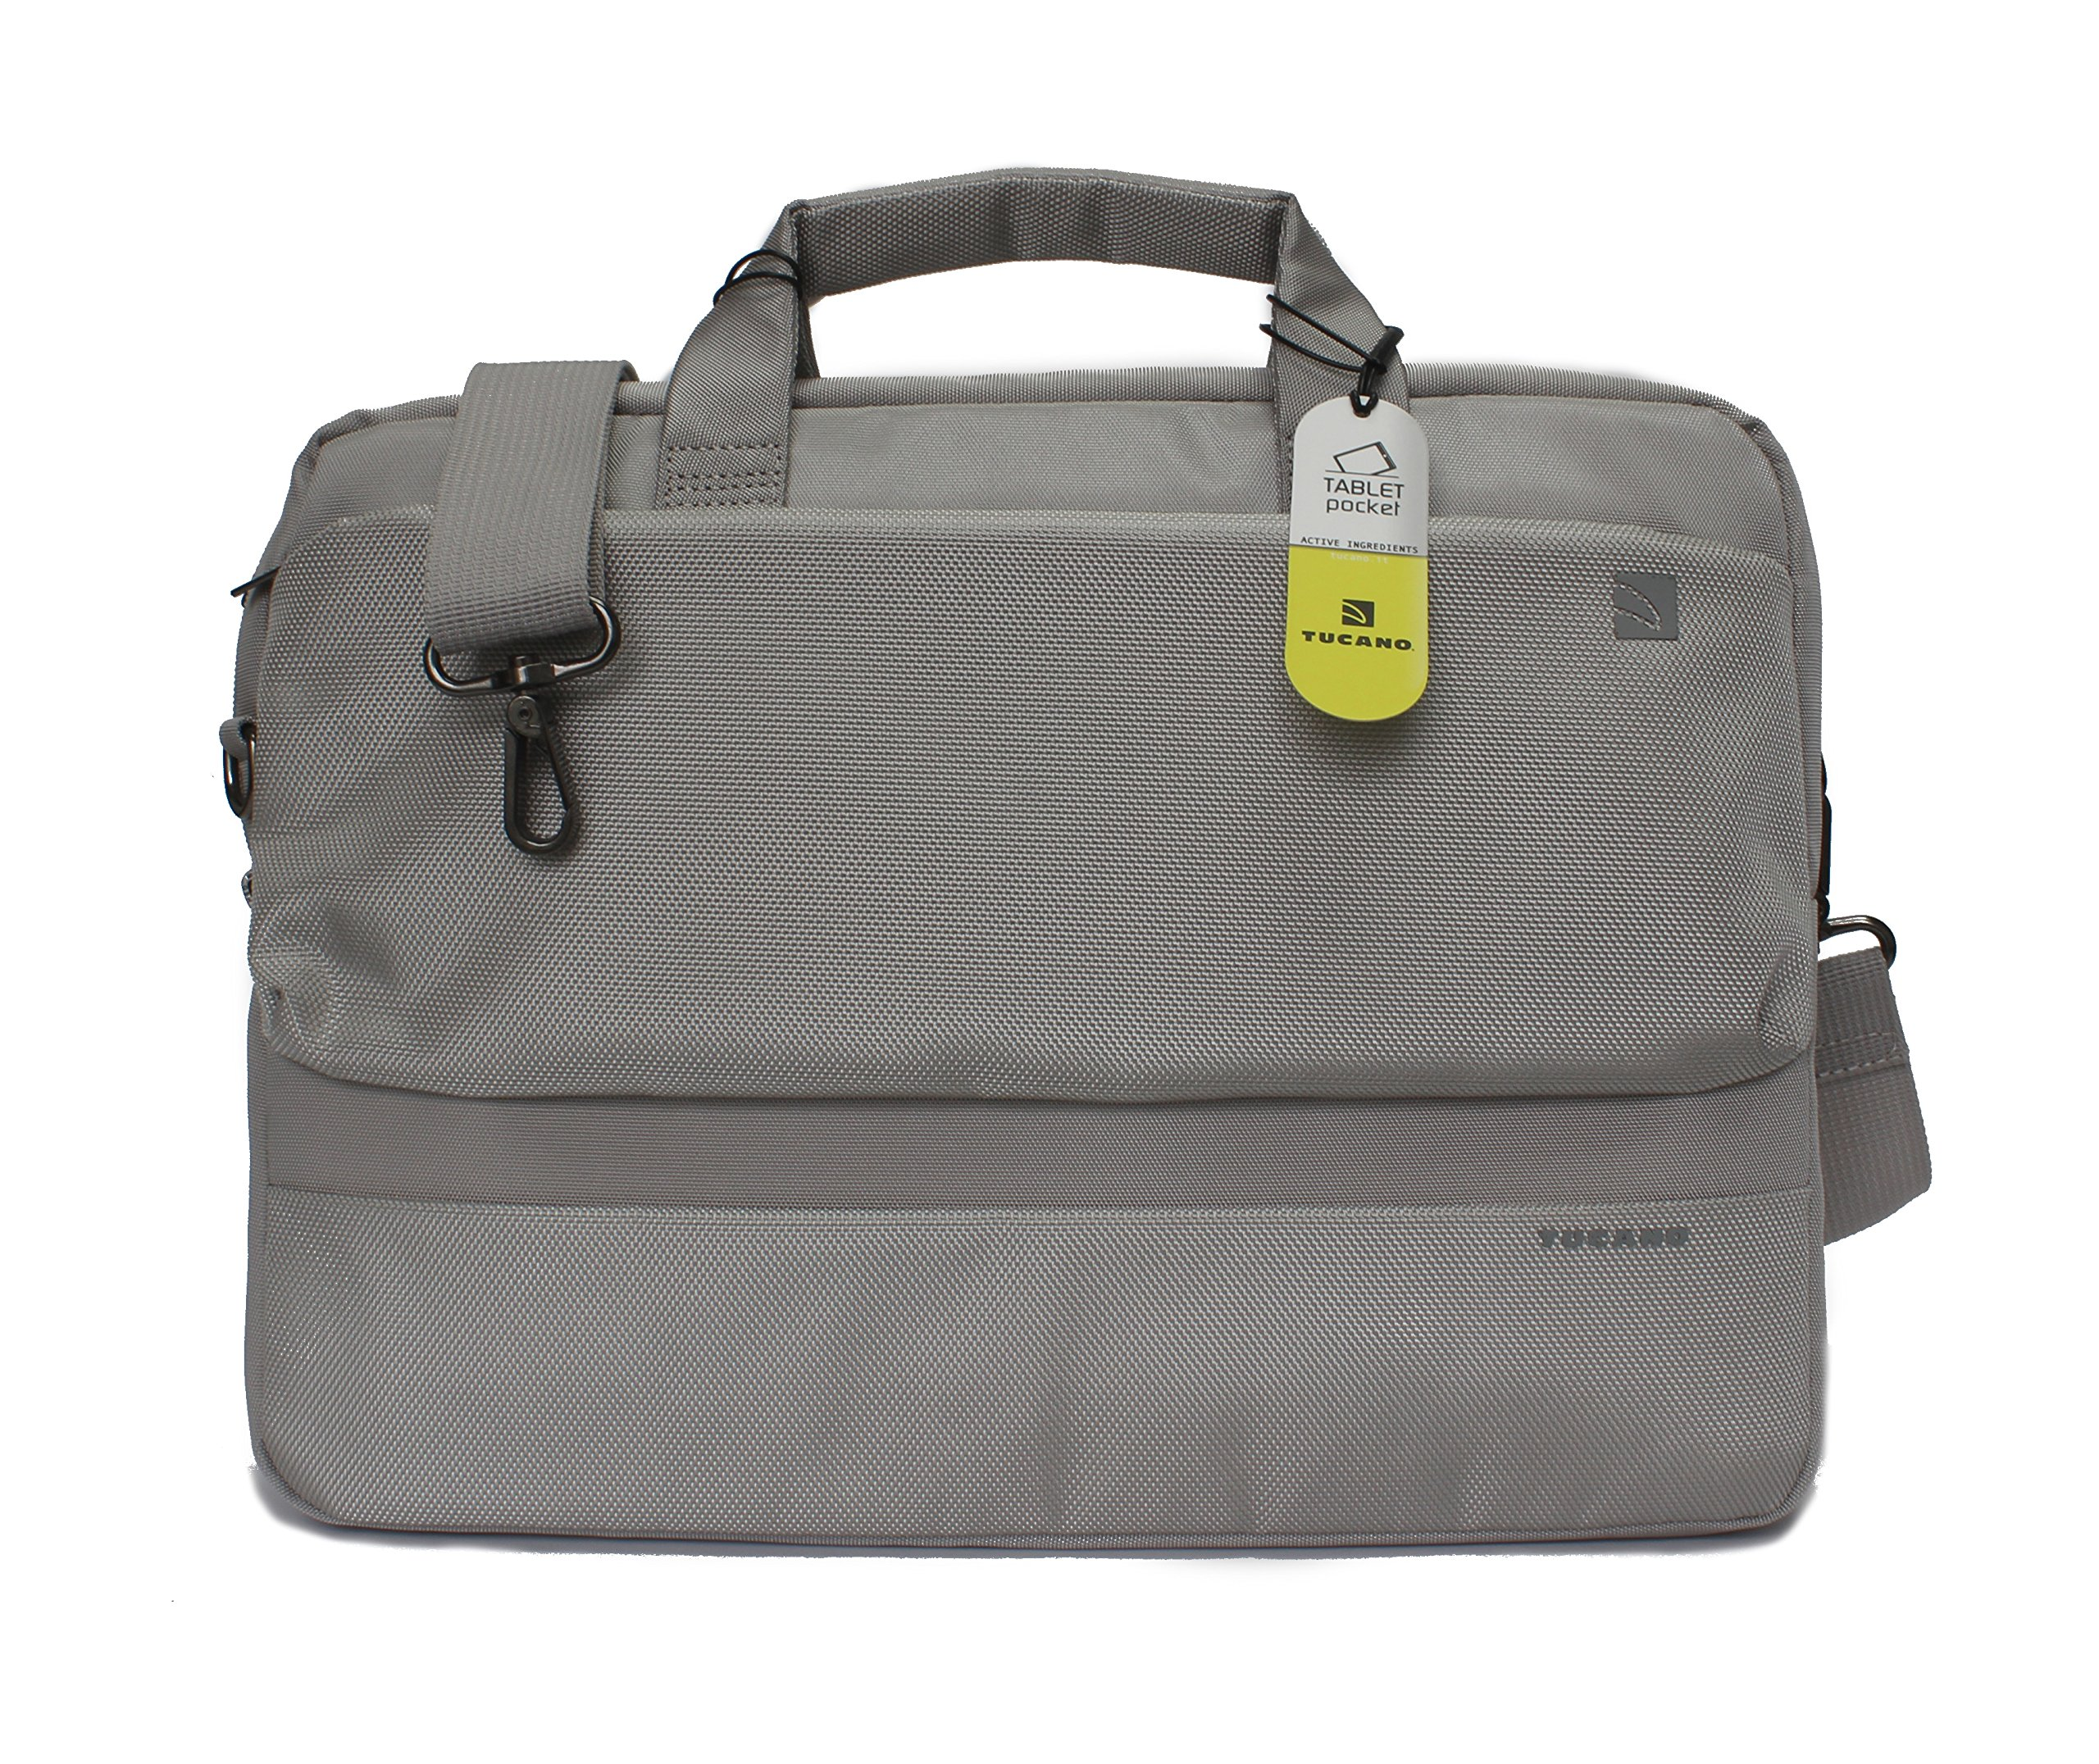 TUCANO BDR1314-SL Laptop Computer Bags & Cases